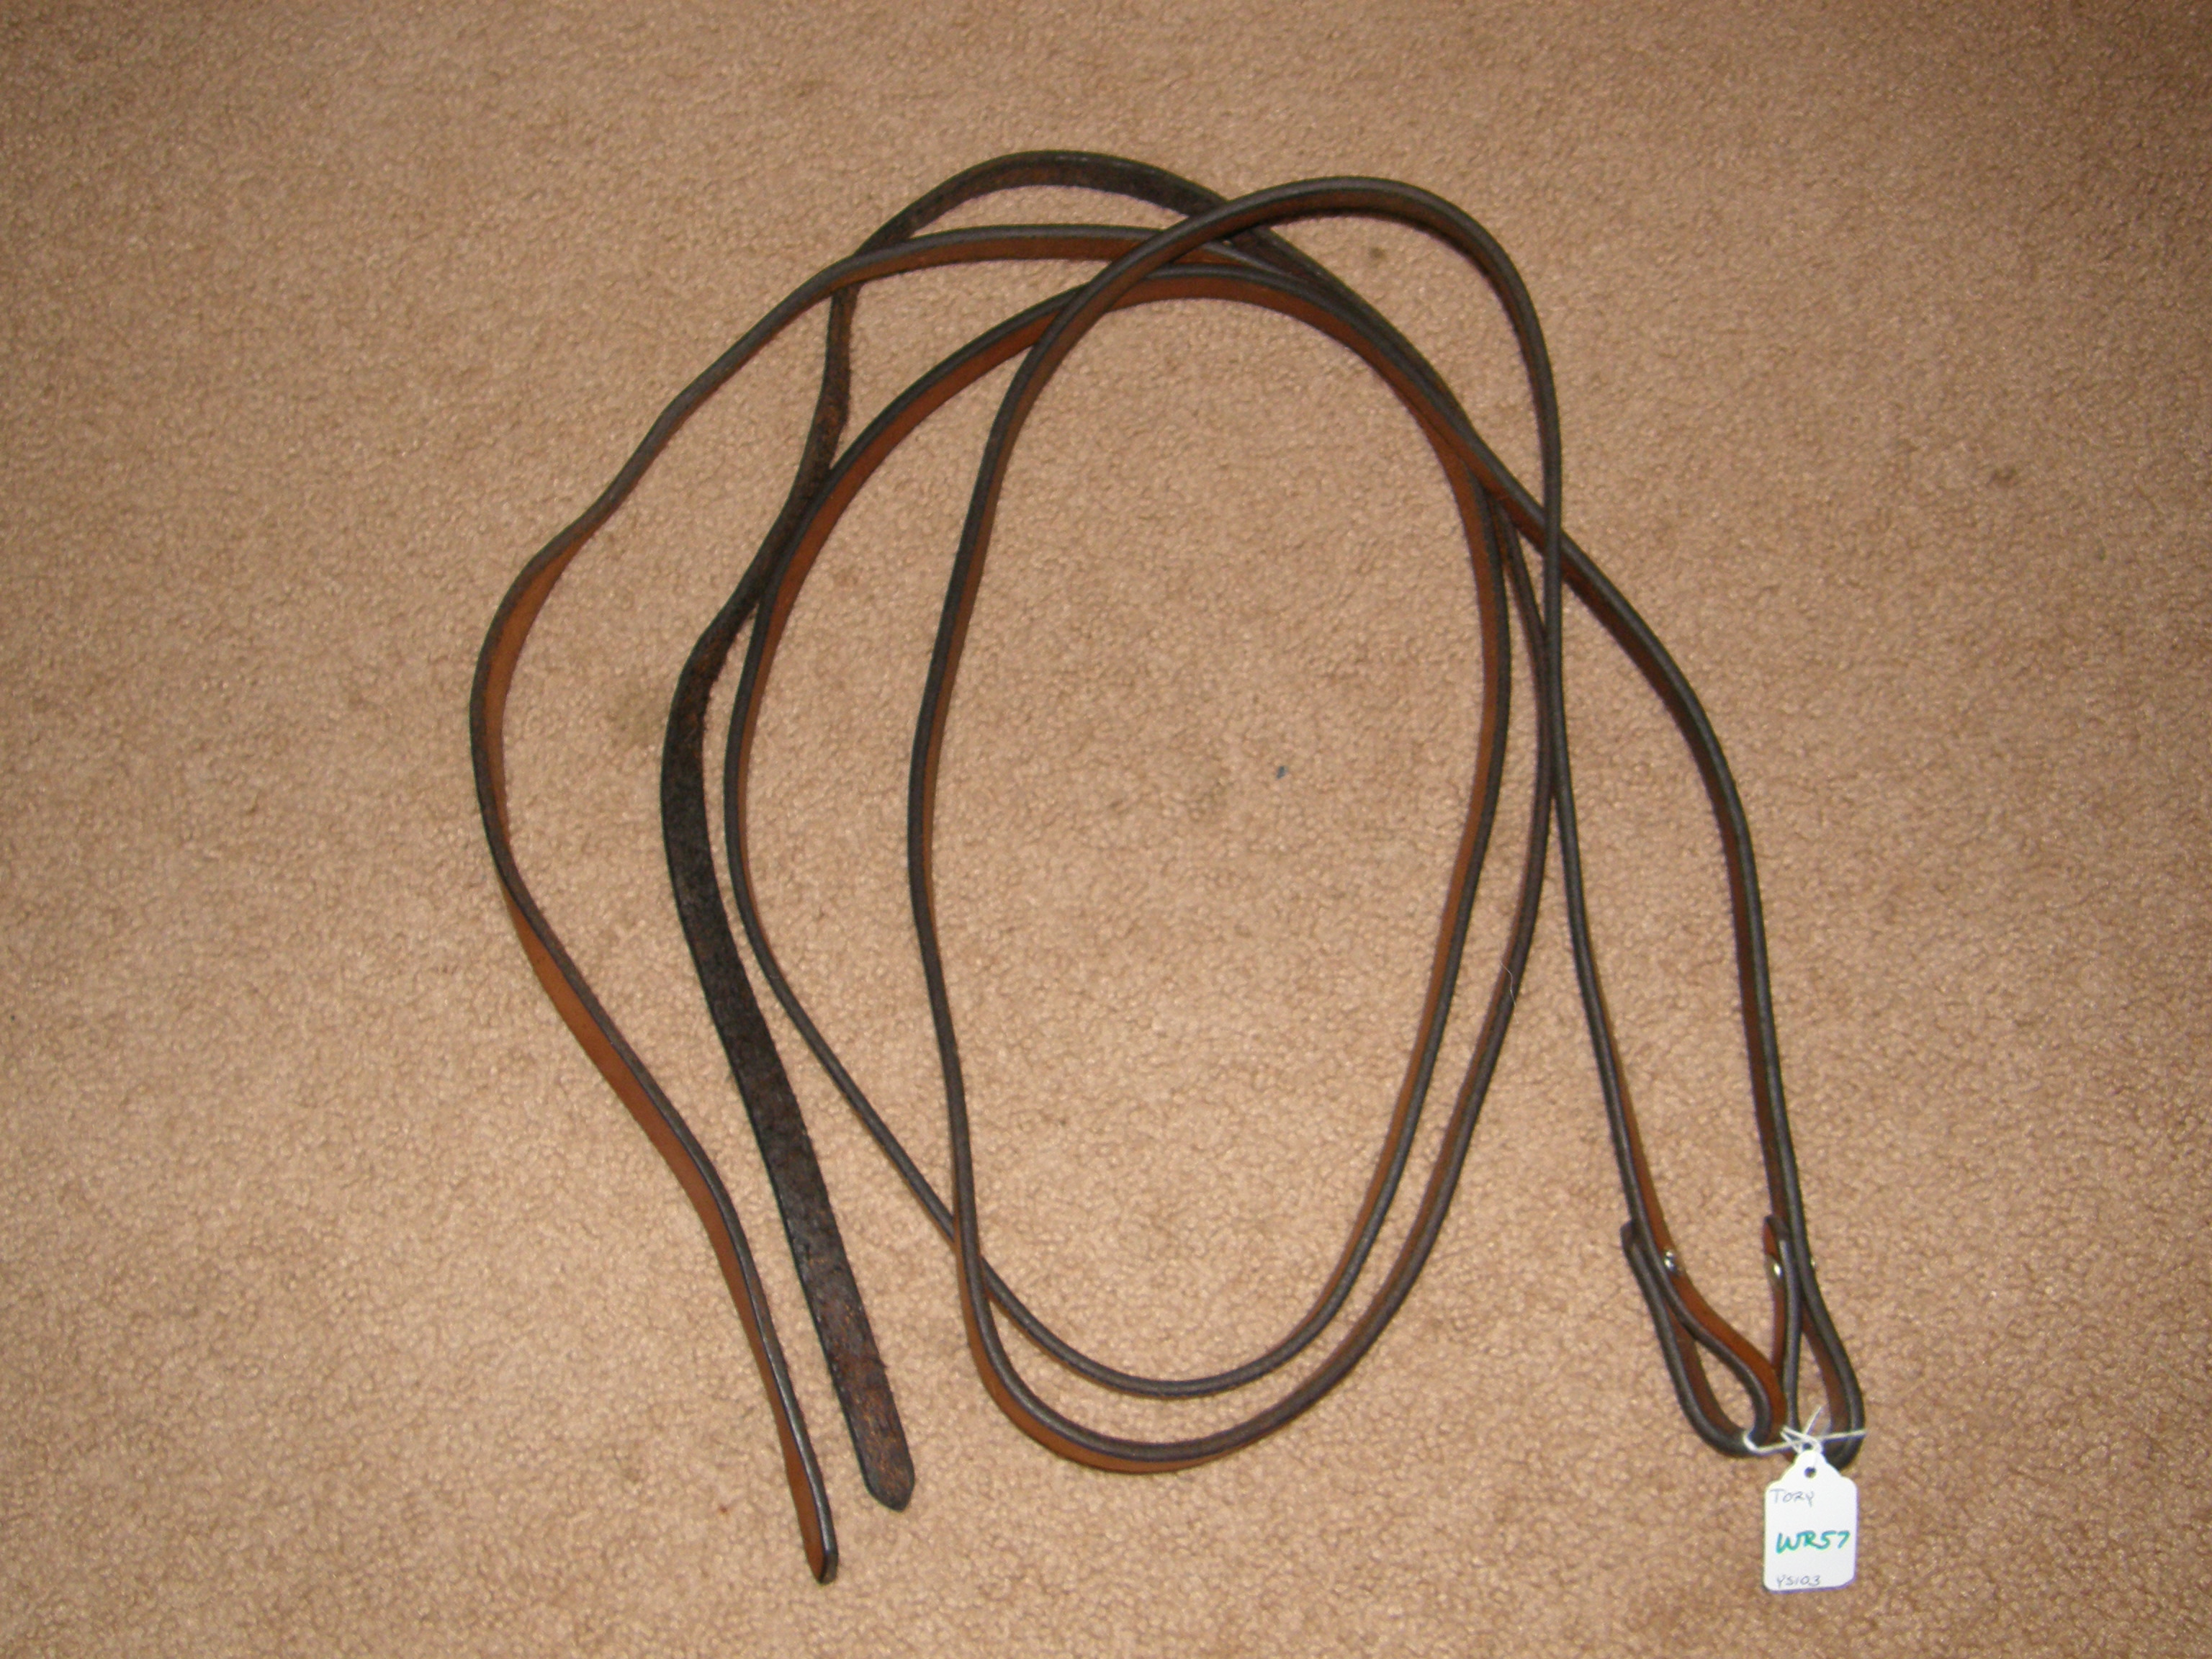 "Tory Western Reins Western Split Reins Bridle Leather Reins Dark Chestnut 5/8"" x 7'"